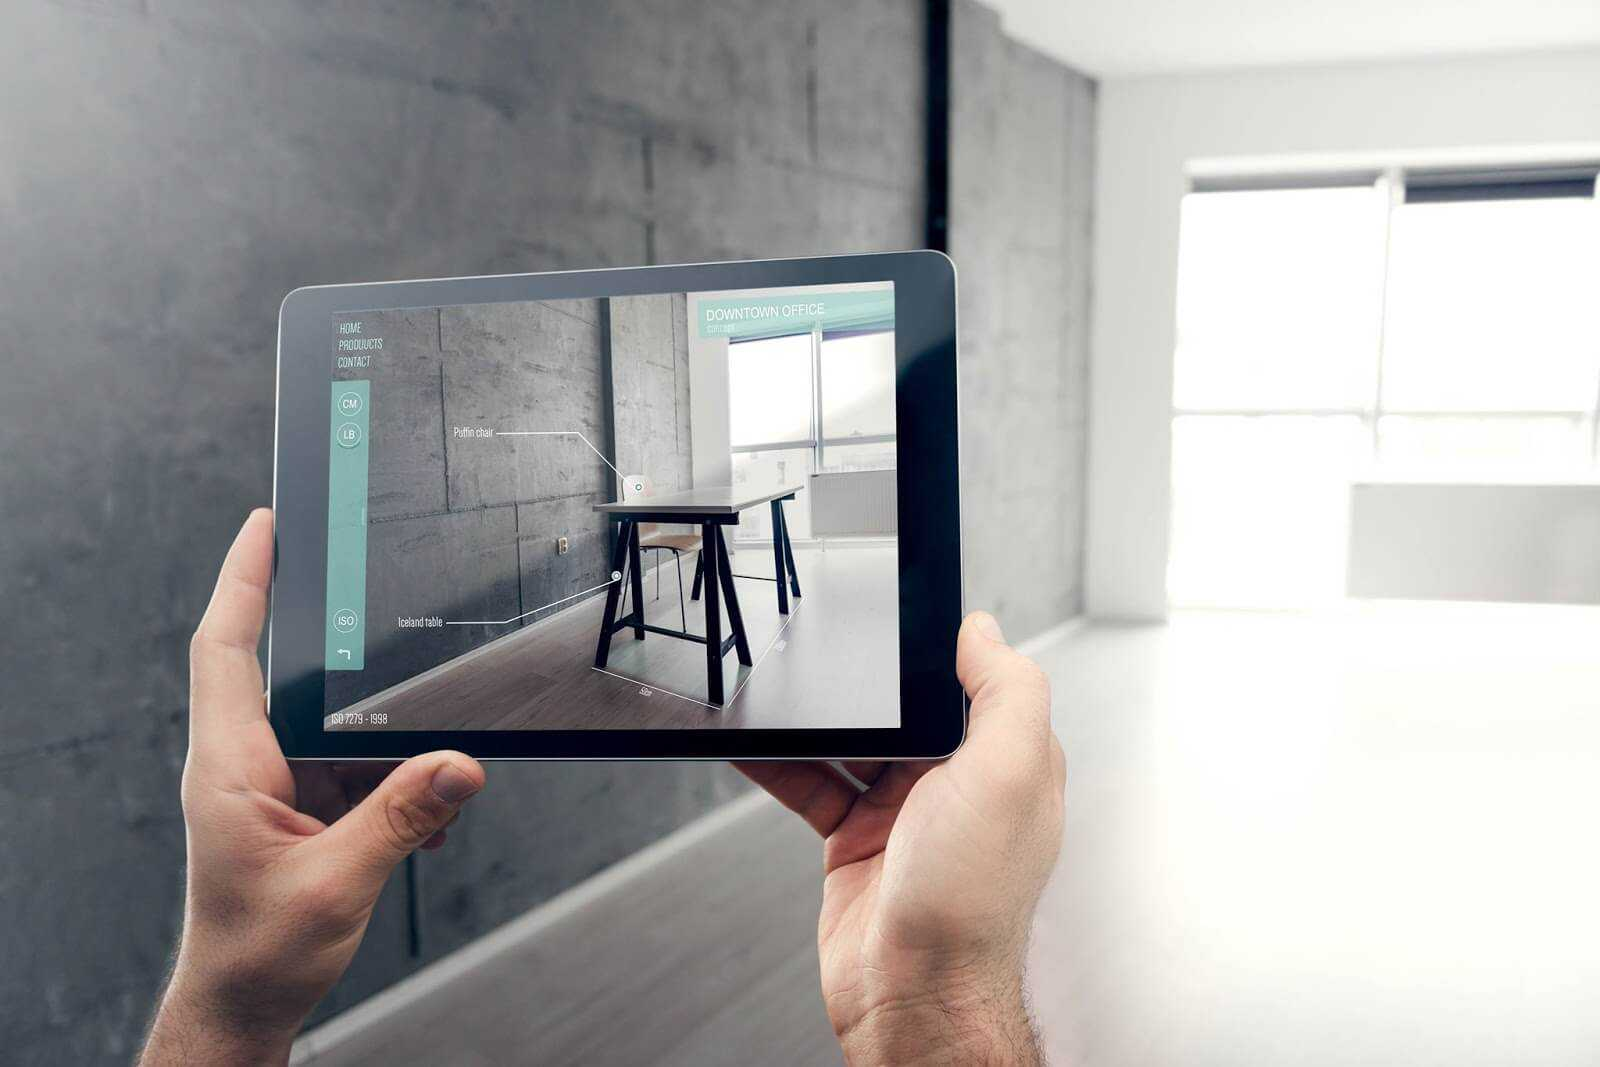 AR IN RETAIL: AND YOUR FRIDGE IS SENDING YOU MESSAGES